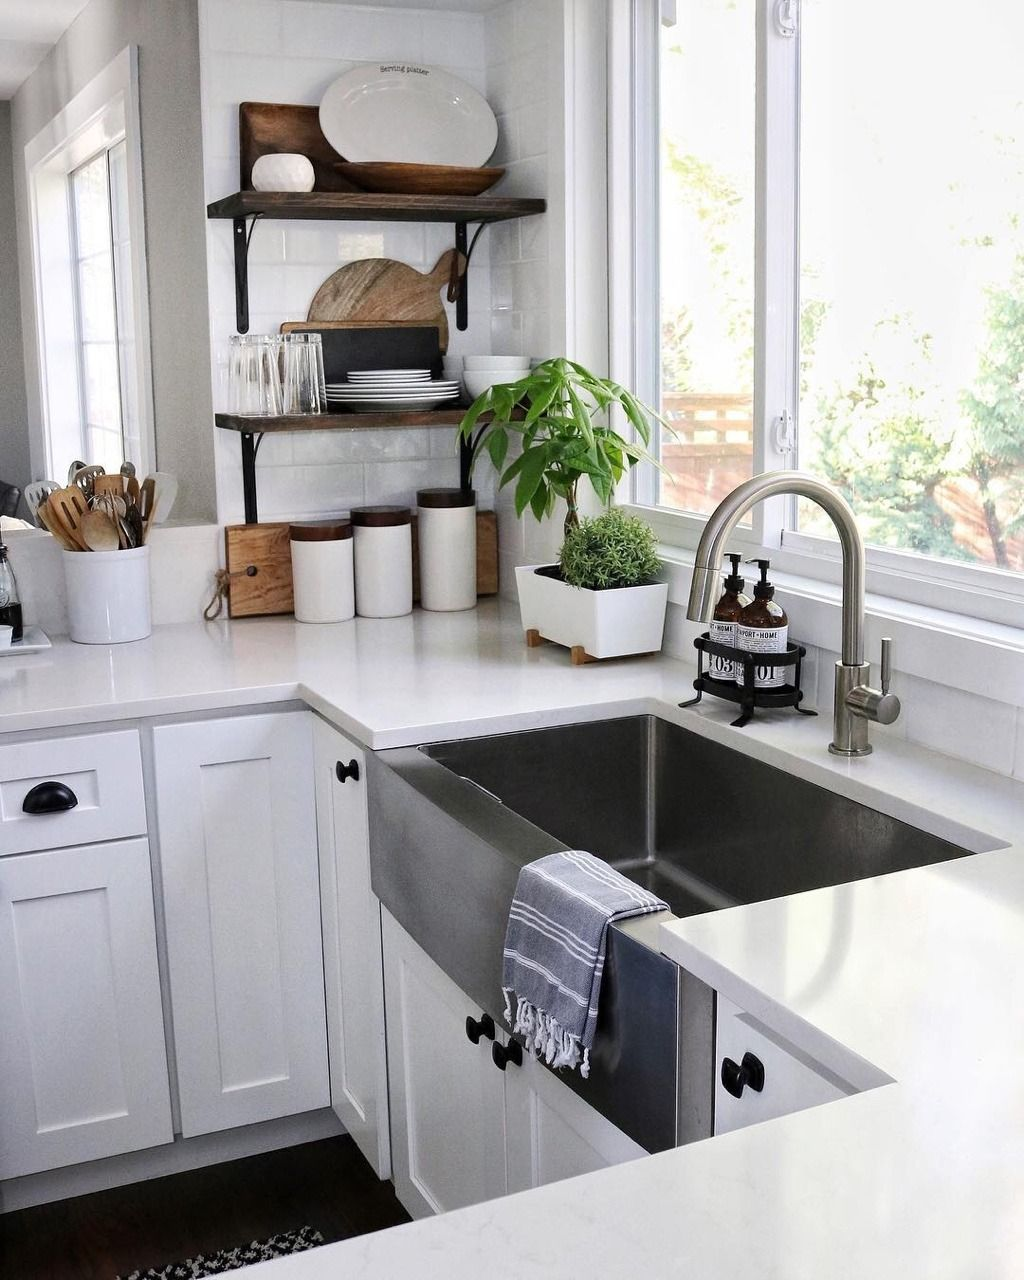 Kitchen Inspiration In These Amazing Newport Home Hand Soaps At Costco Set Newport Home Hand Soap Collection Wild Lavender Rosemary Mint Lemon Verbena In Kitchen Sink Design Kitchen Inspirations Kitchen